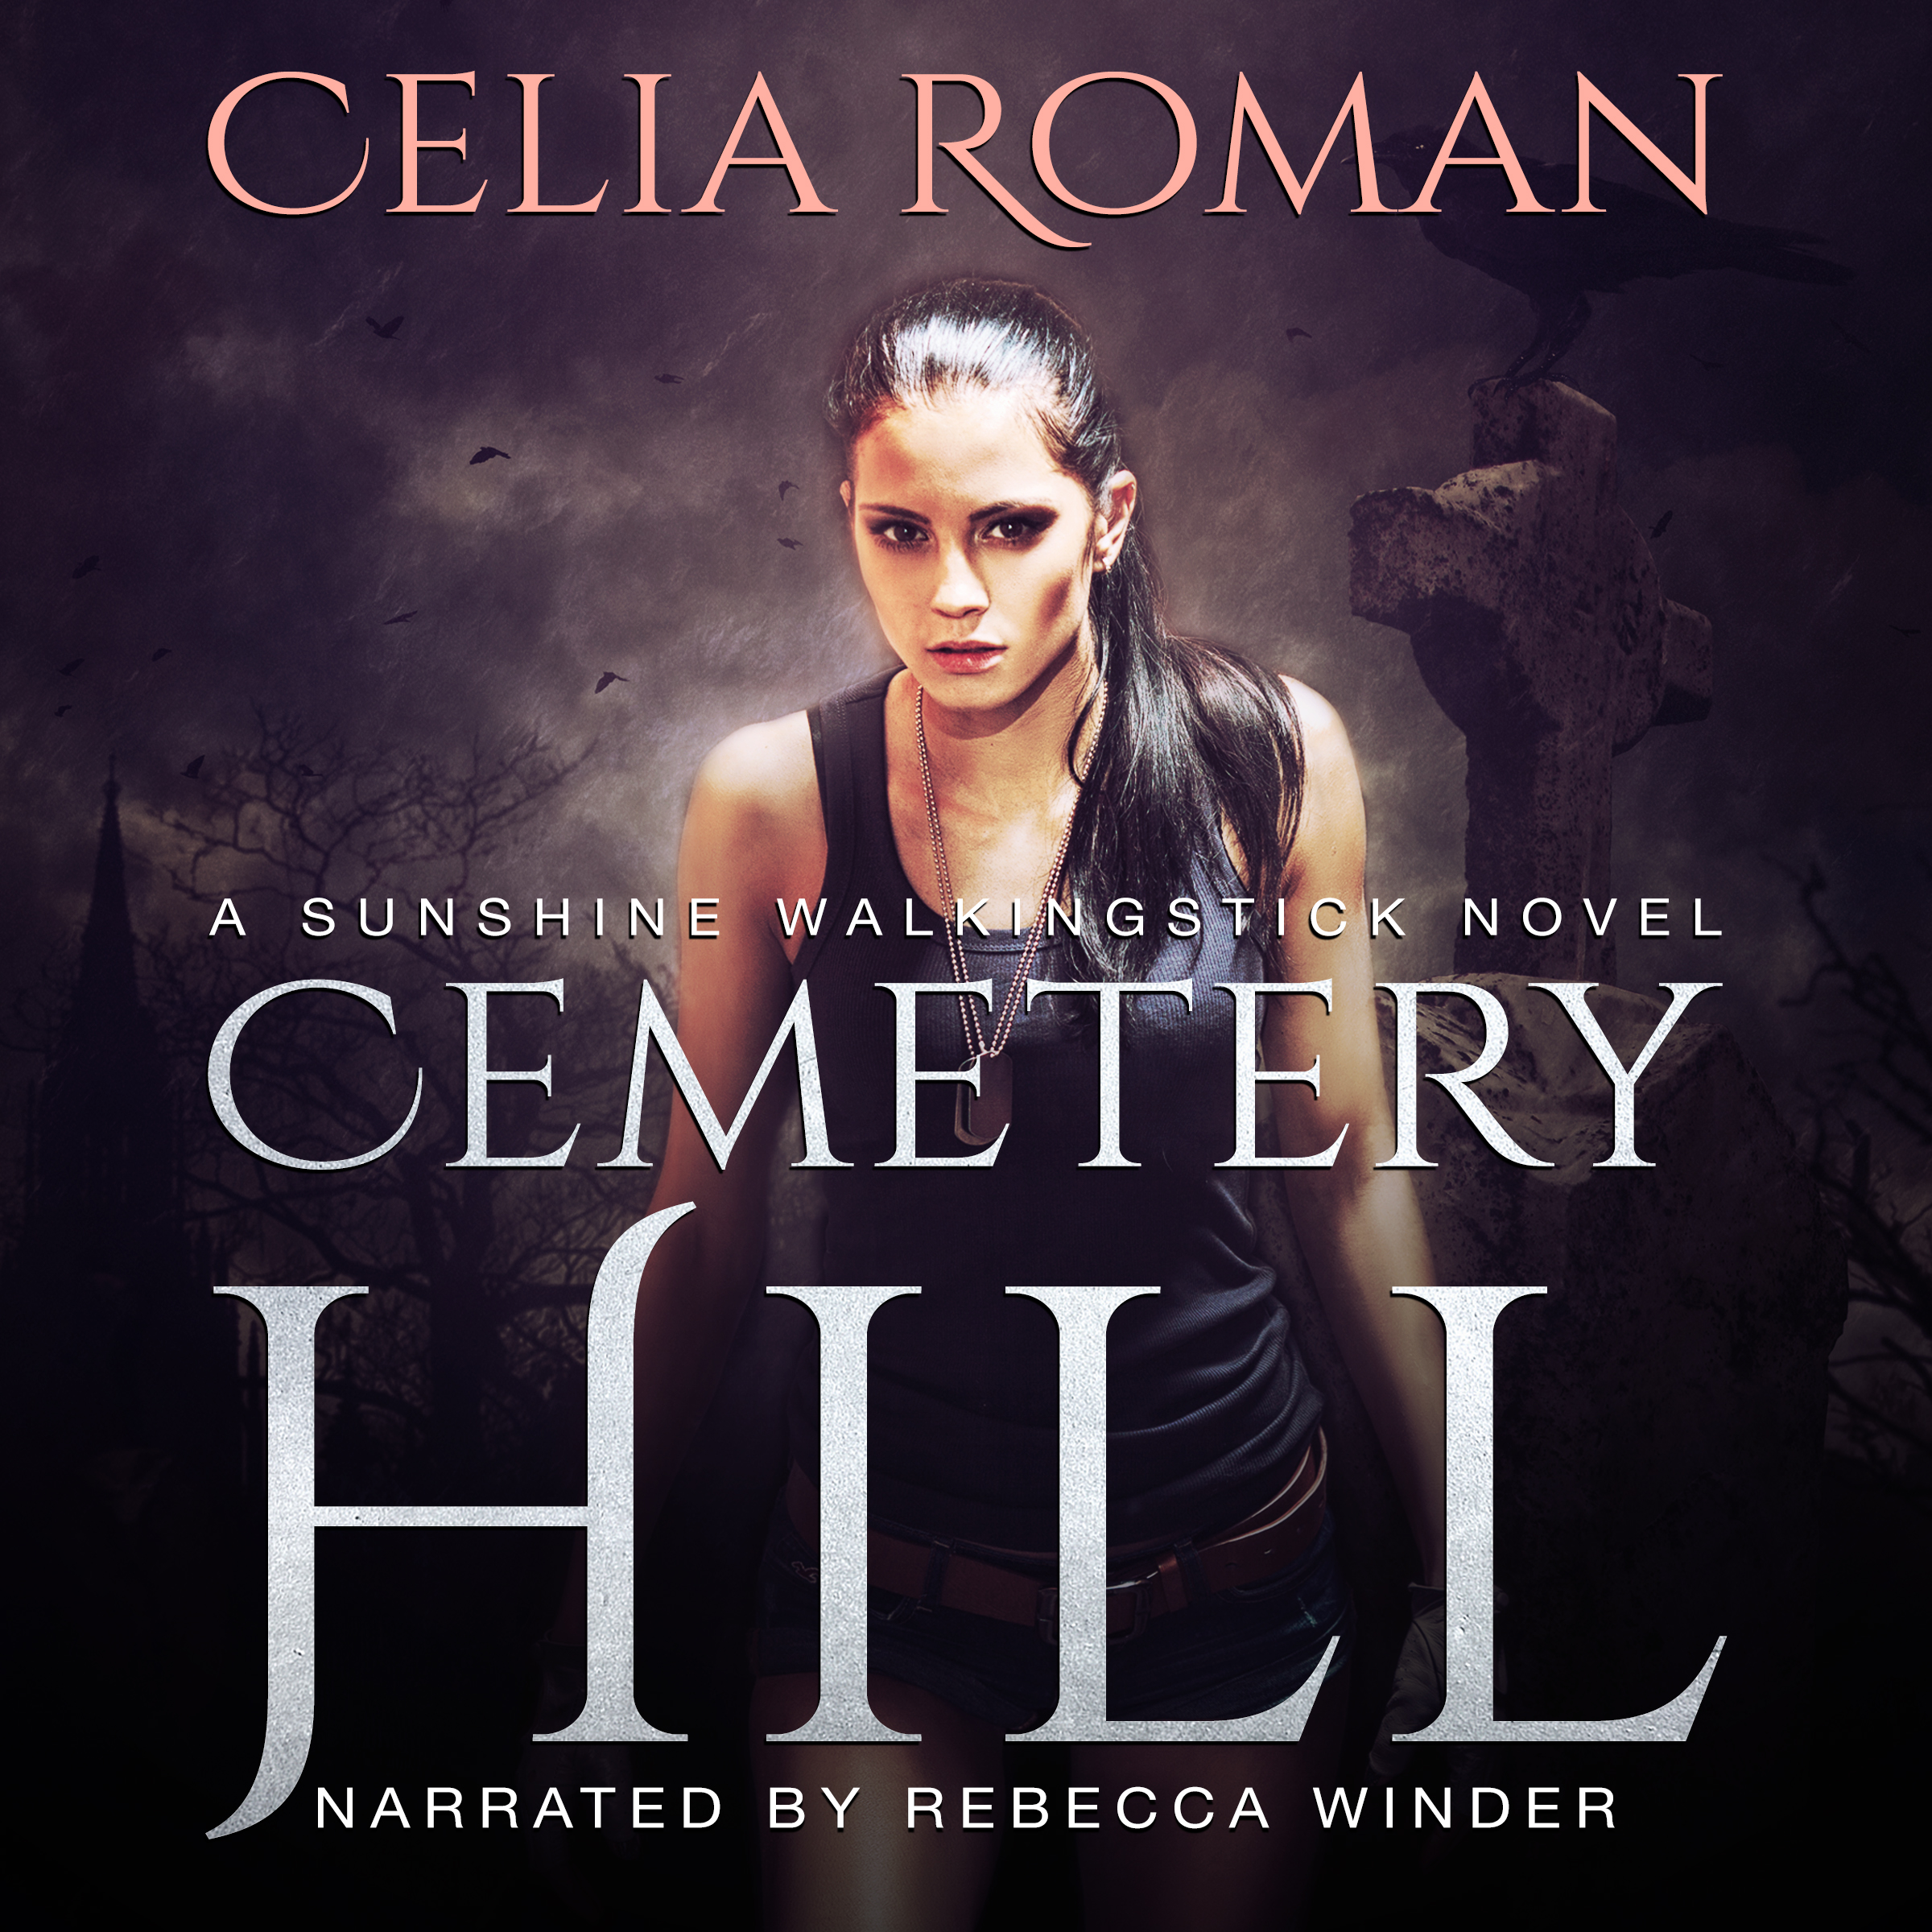 Cemetery Hill (Sunshine Walkingstick, Book 3) by Celia Roman